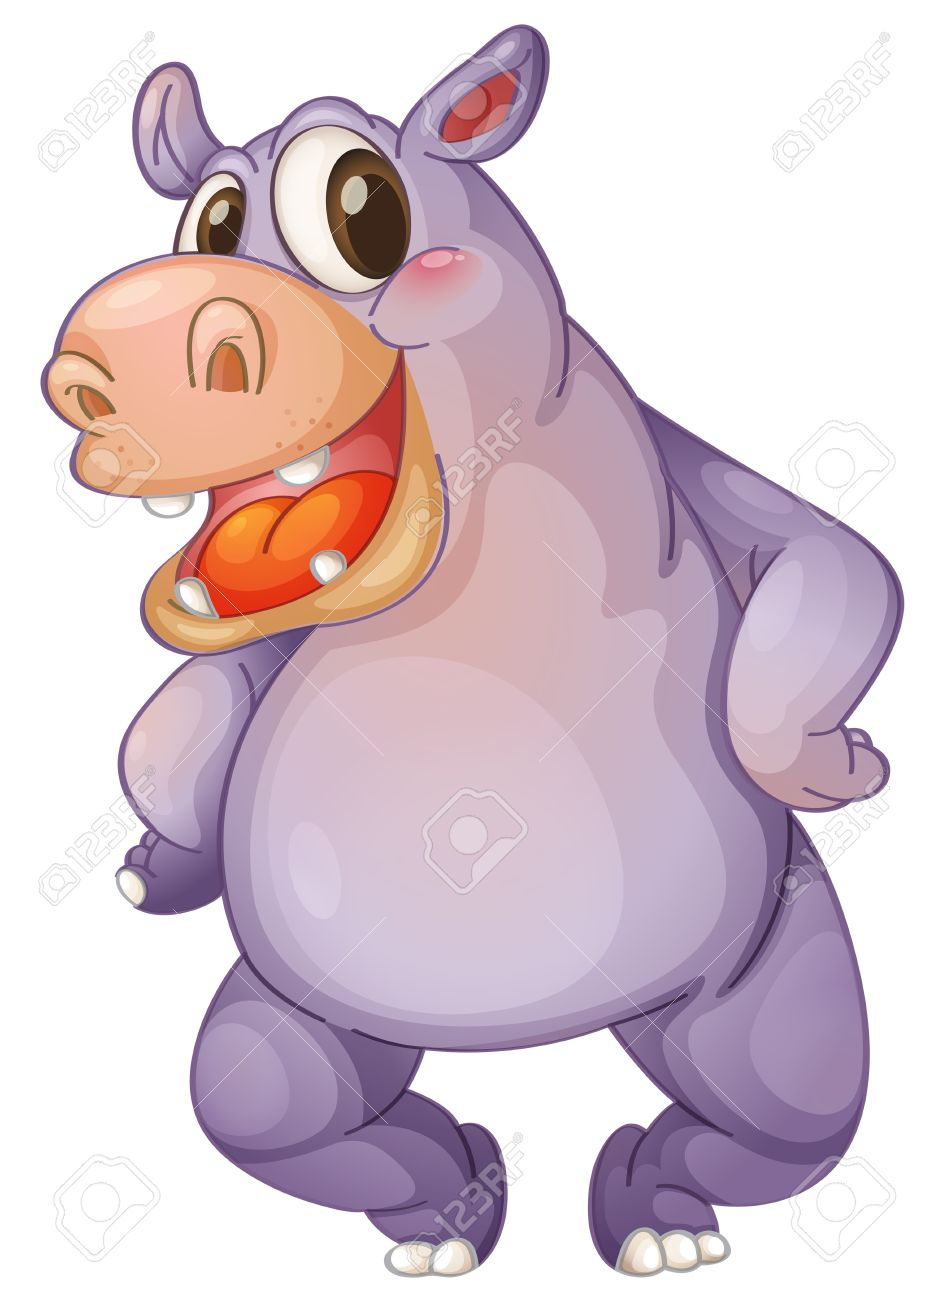 Illustration of a animated hippo Stock Vector - 13524665